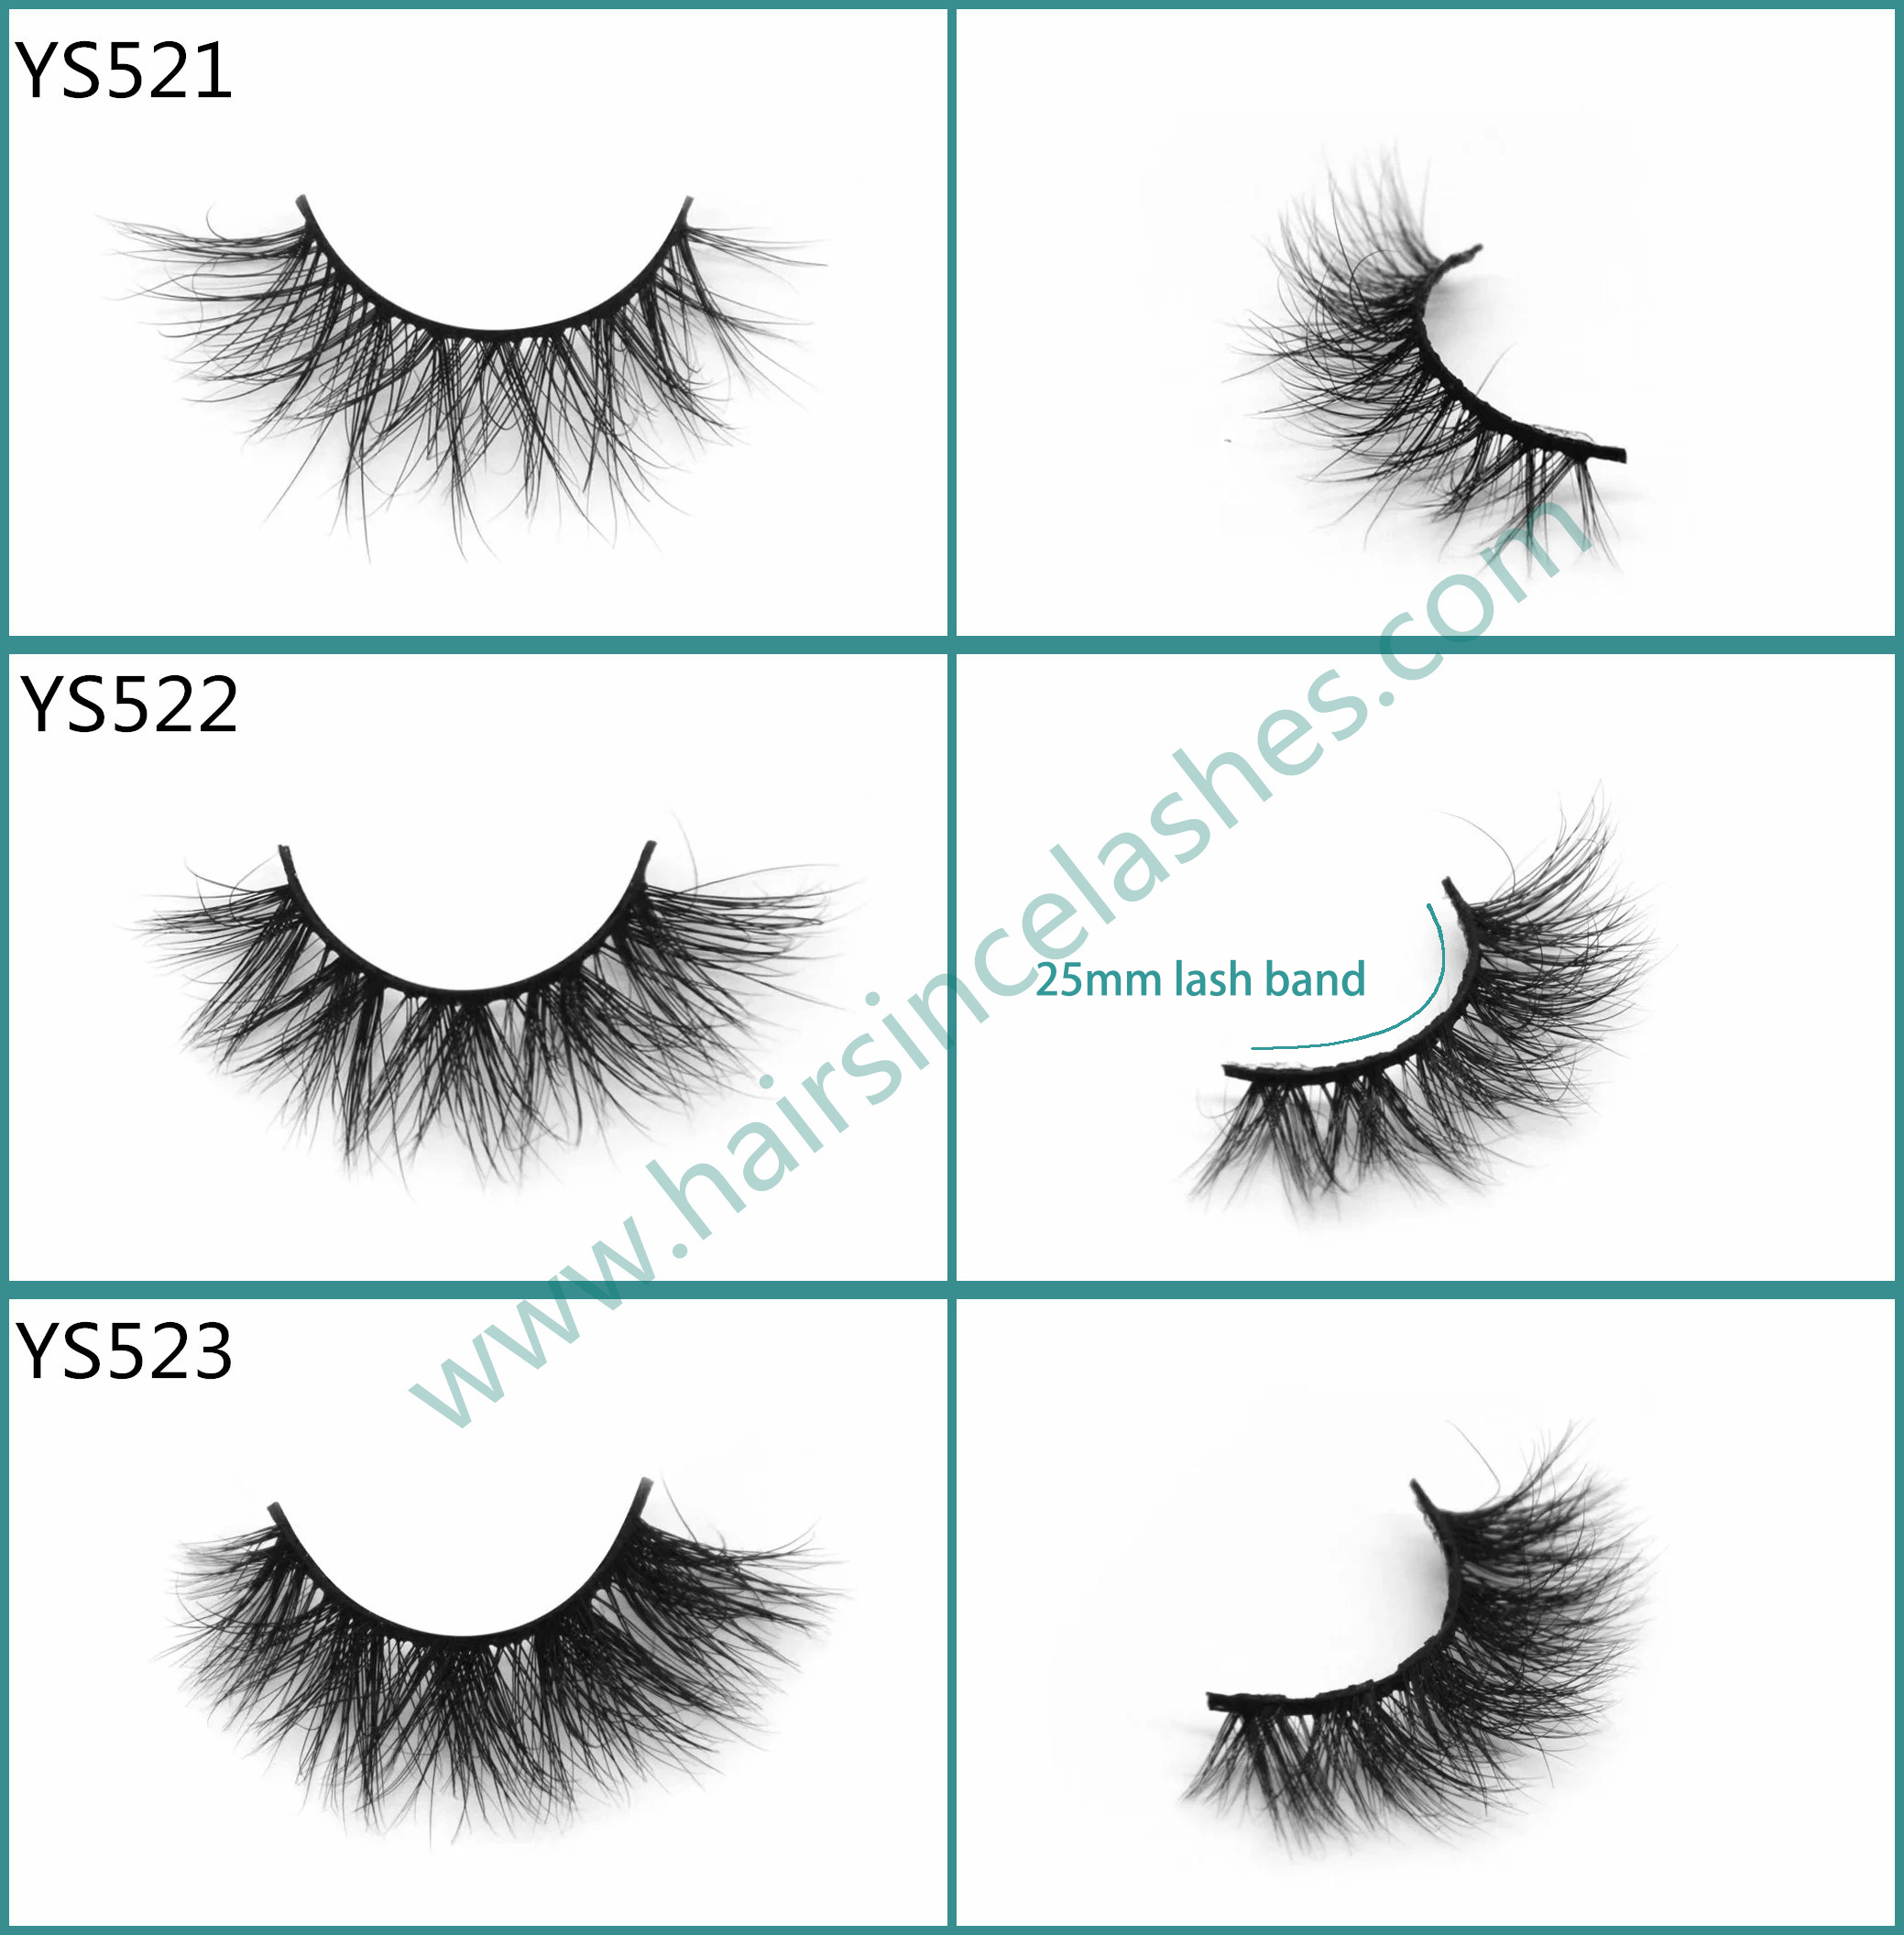 a2bbcde598e Wholesale price hot popular styles 3D mink hair lashes with short styles  cotton band from factory